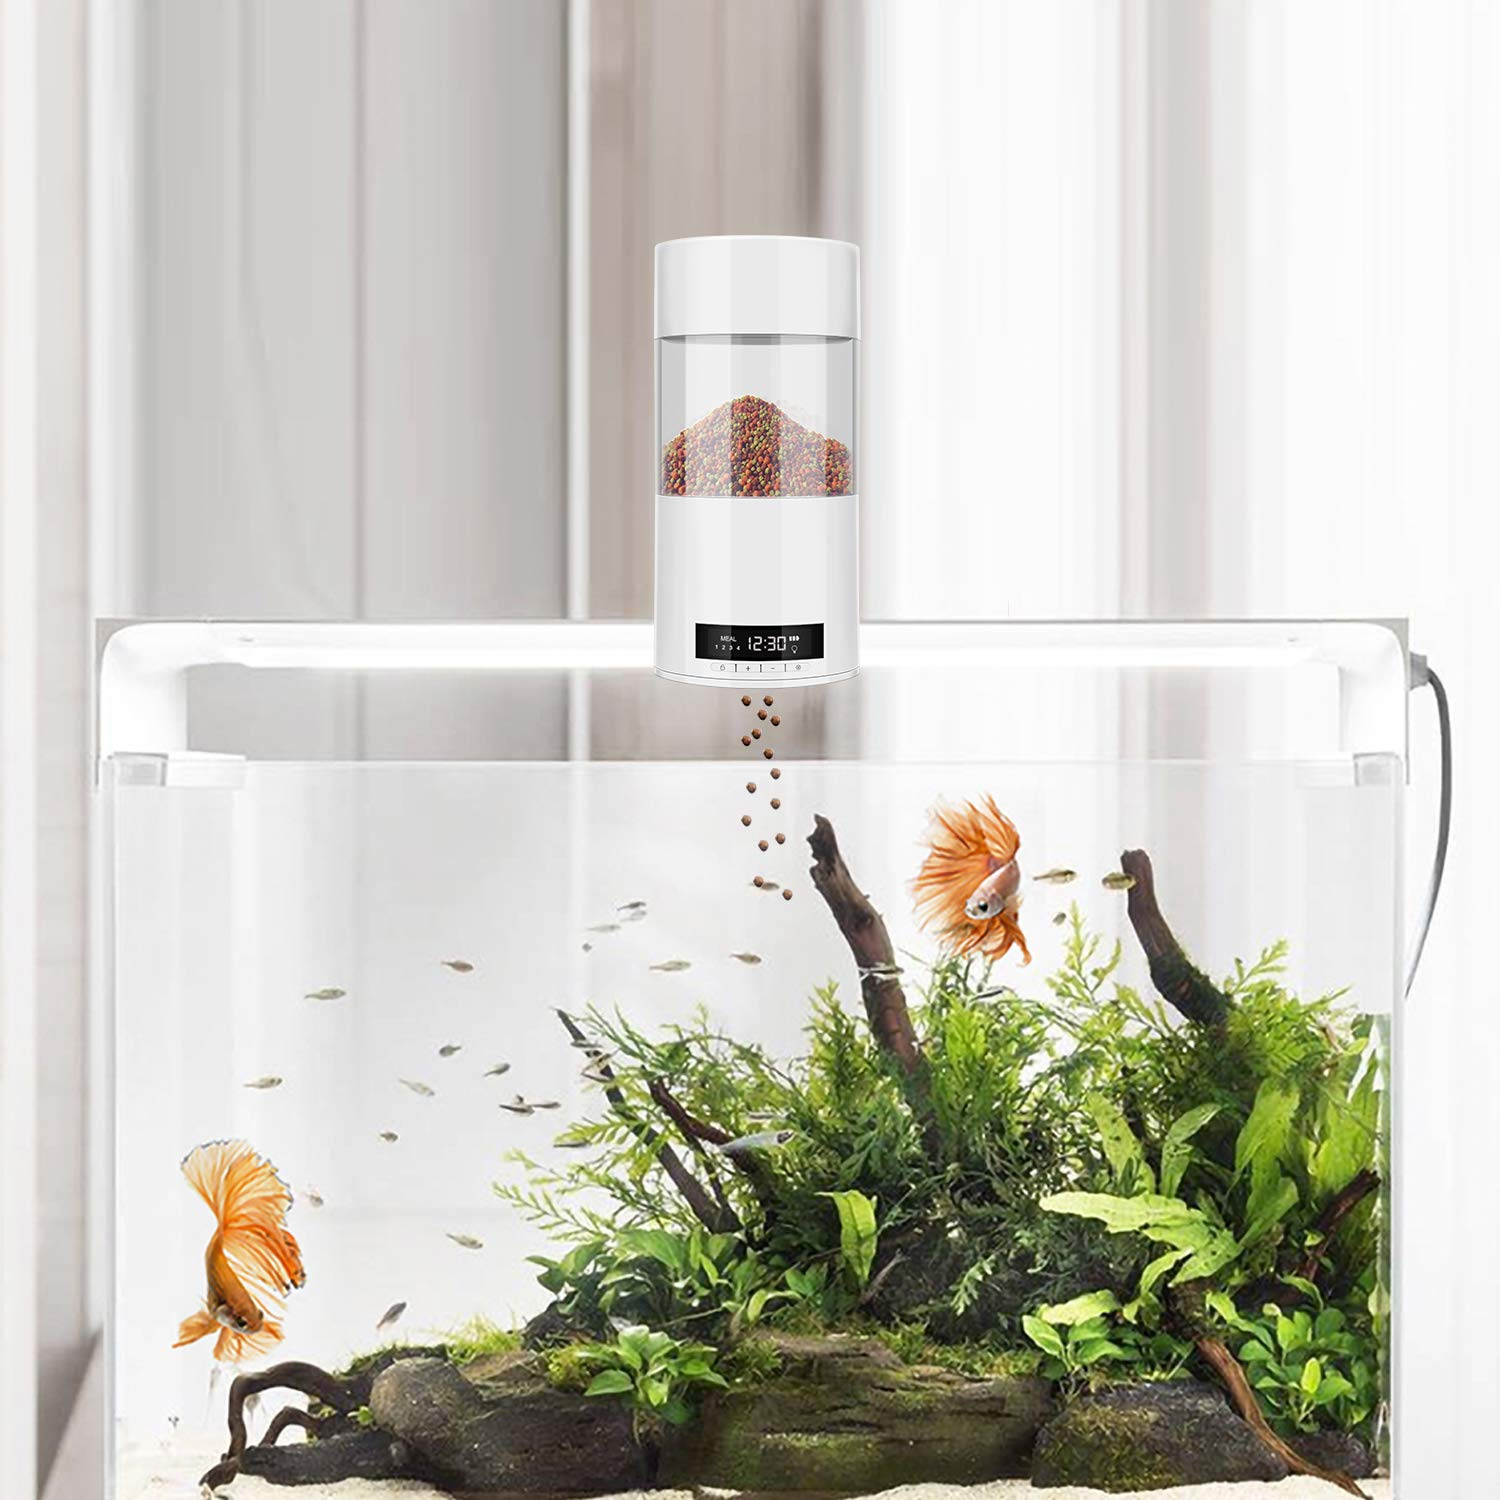 ADSRO Automatic Fish Feeder, Fish Food Dispenser Digital Feeding Unit for Aquarium Fish Tank Battery-Operated Automatic Turtle Small Fish, Tropical Fish, Gold Fish